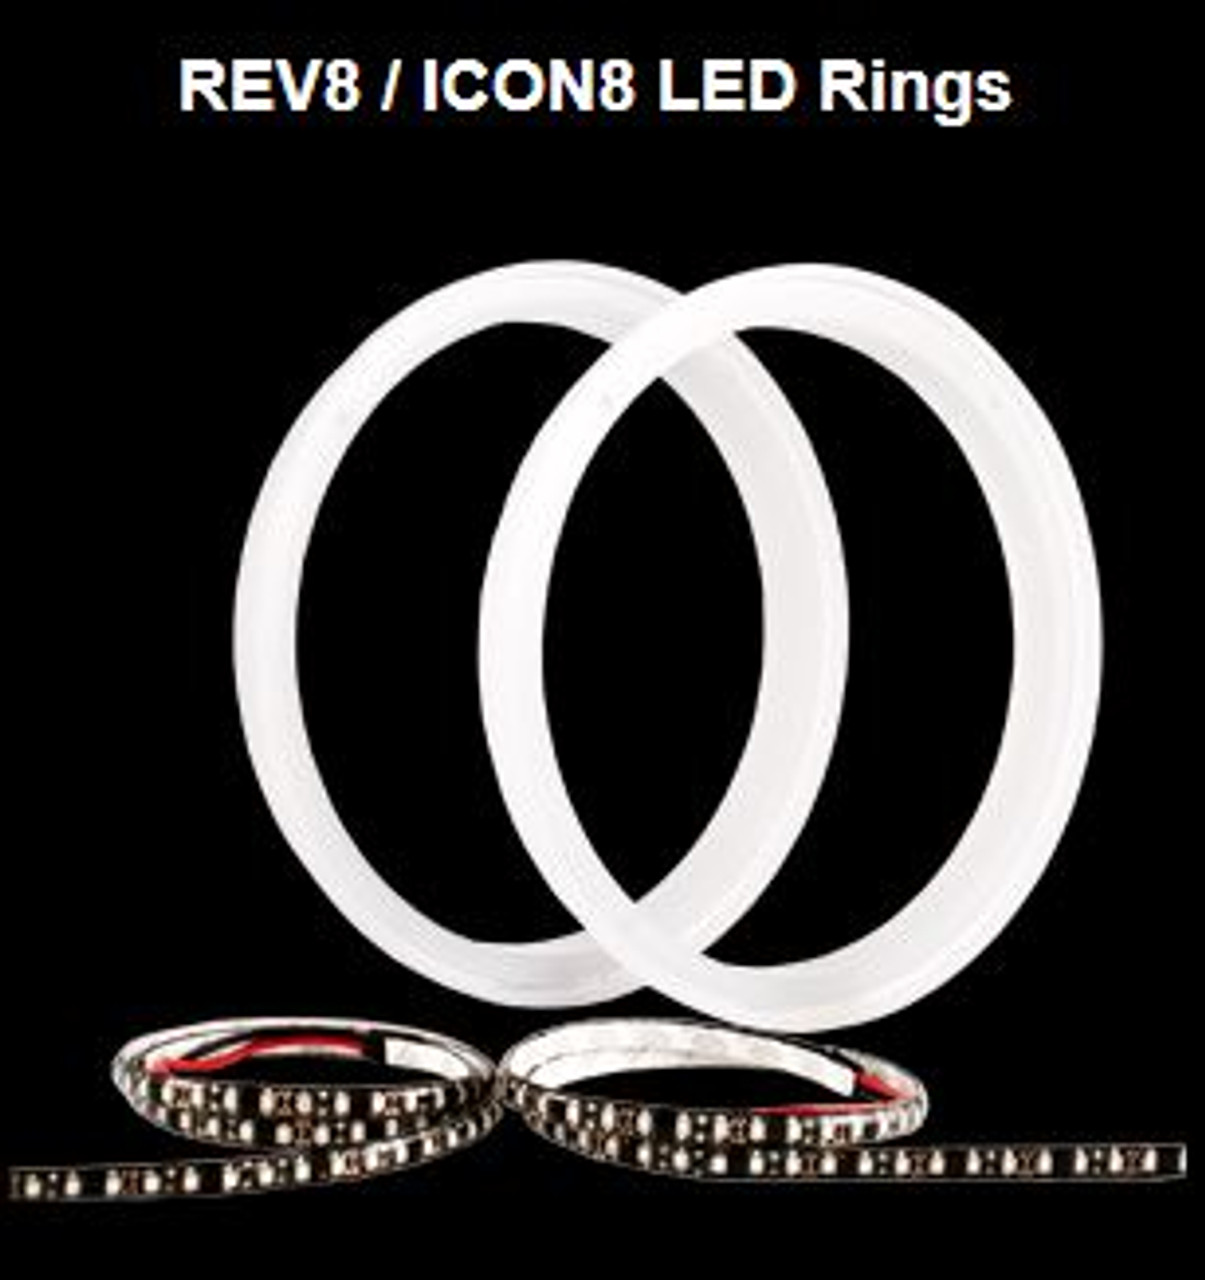 LED Rings for the 808